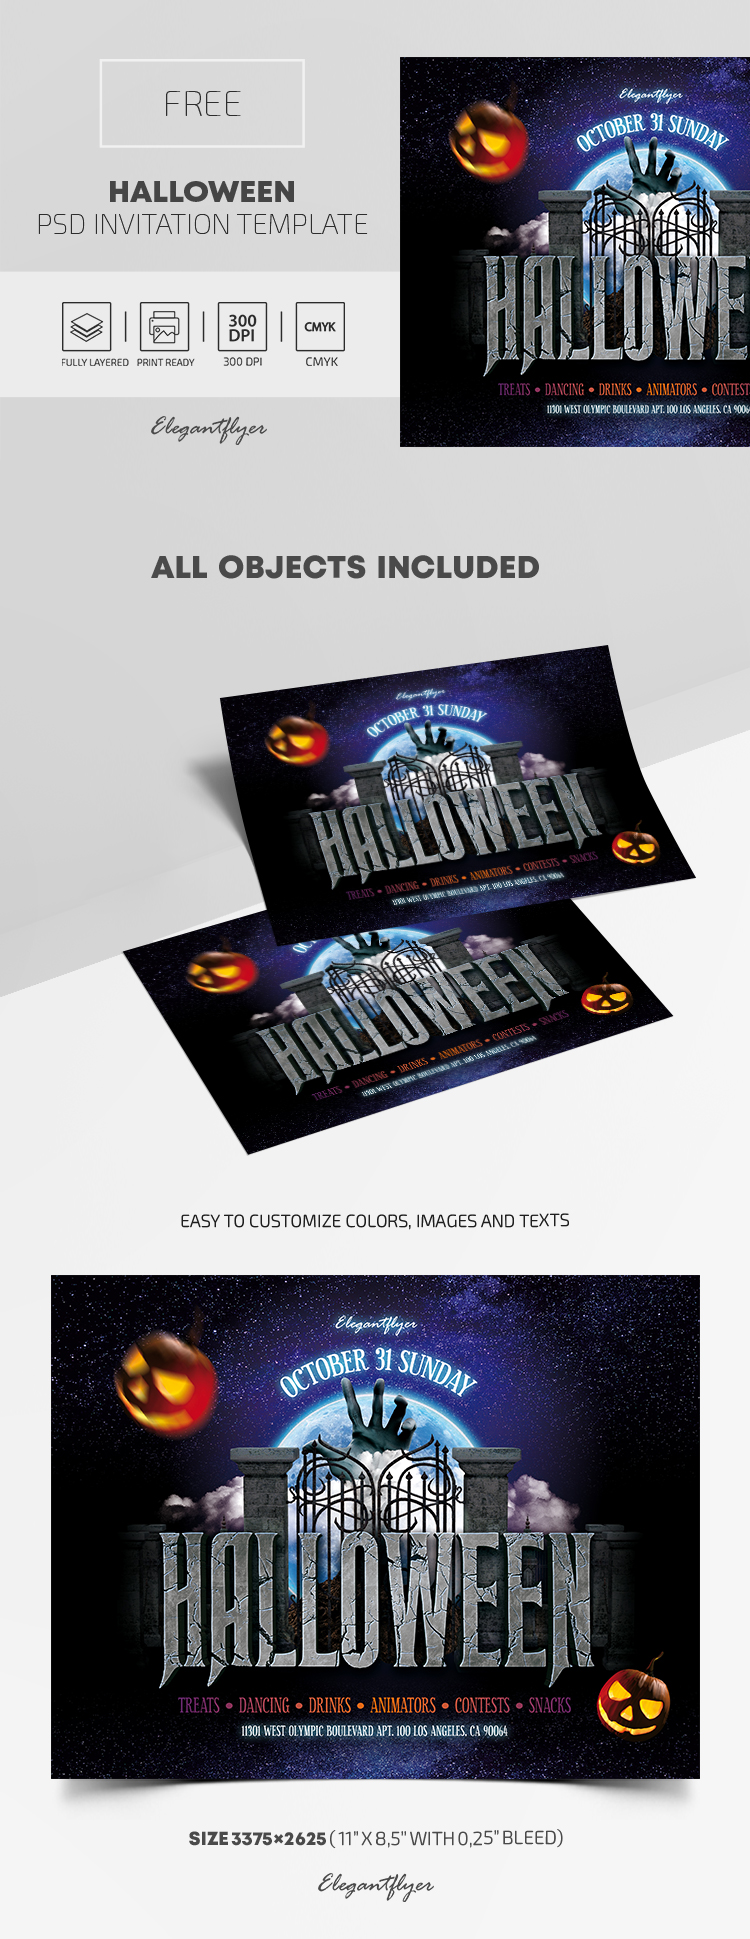 Free Halloween Invitation Template in PSD